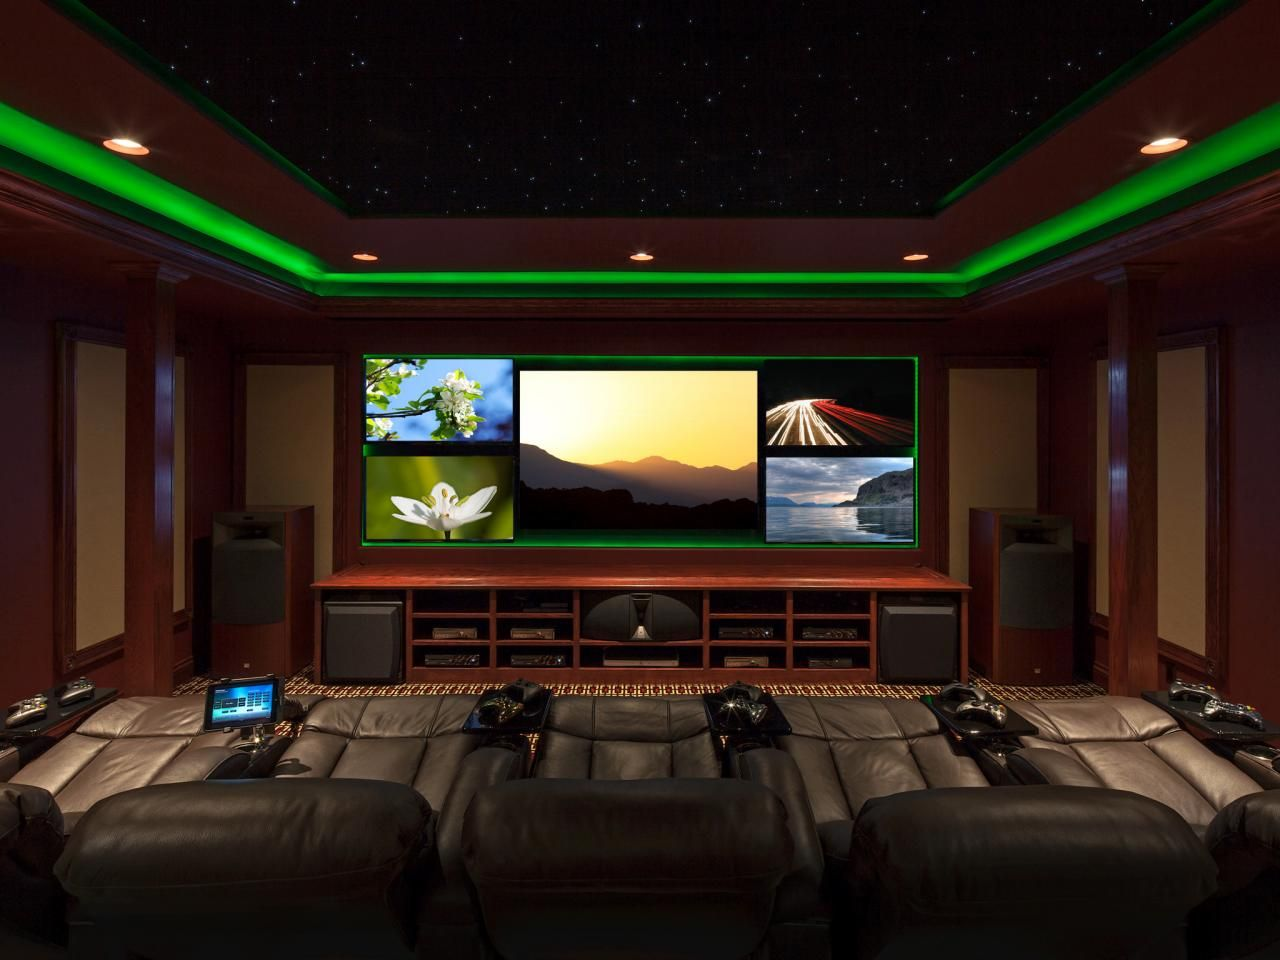 Bedroom Designs Video best 25+ gamer room ideas on pinterest | gamer bedroom, gaming